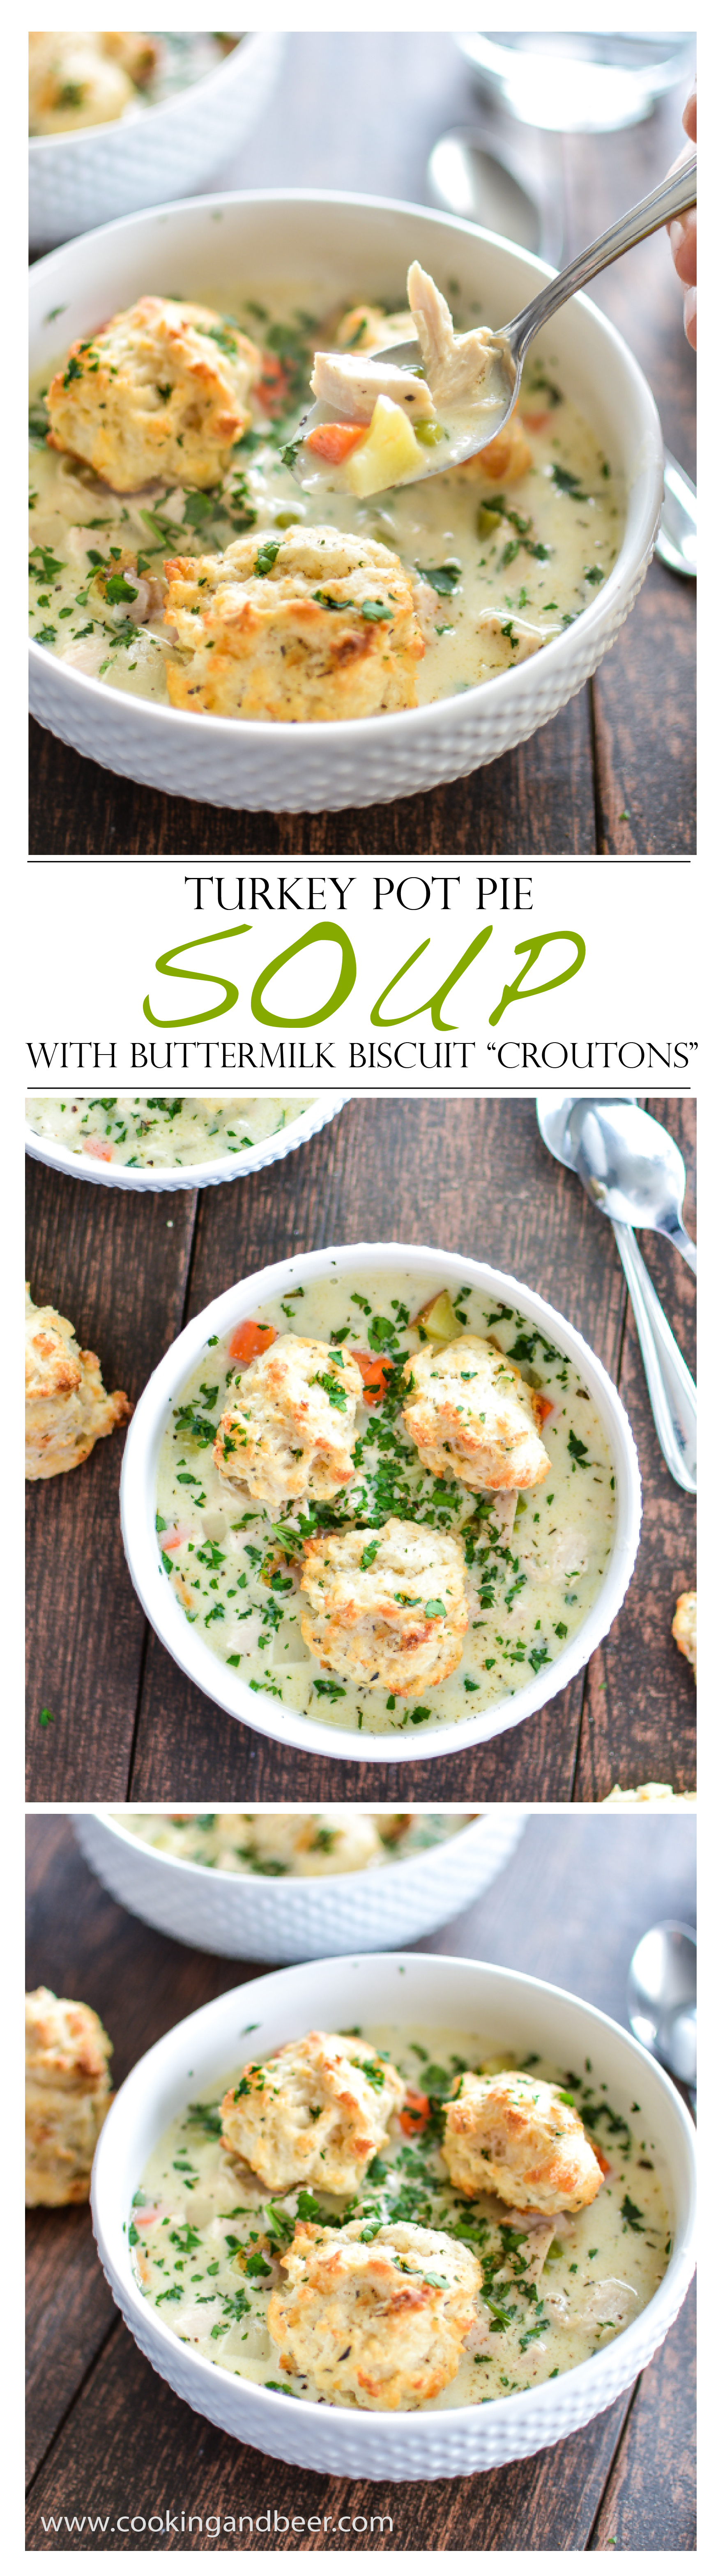 "Turkey Pot Pie Soup with Buttermilk Biscuit ""Croutons"""